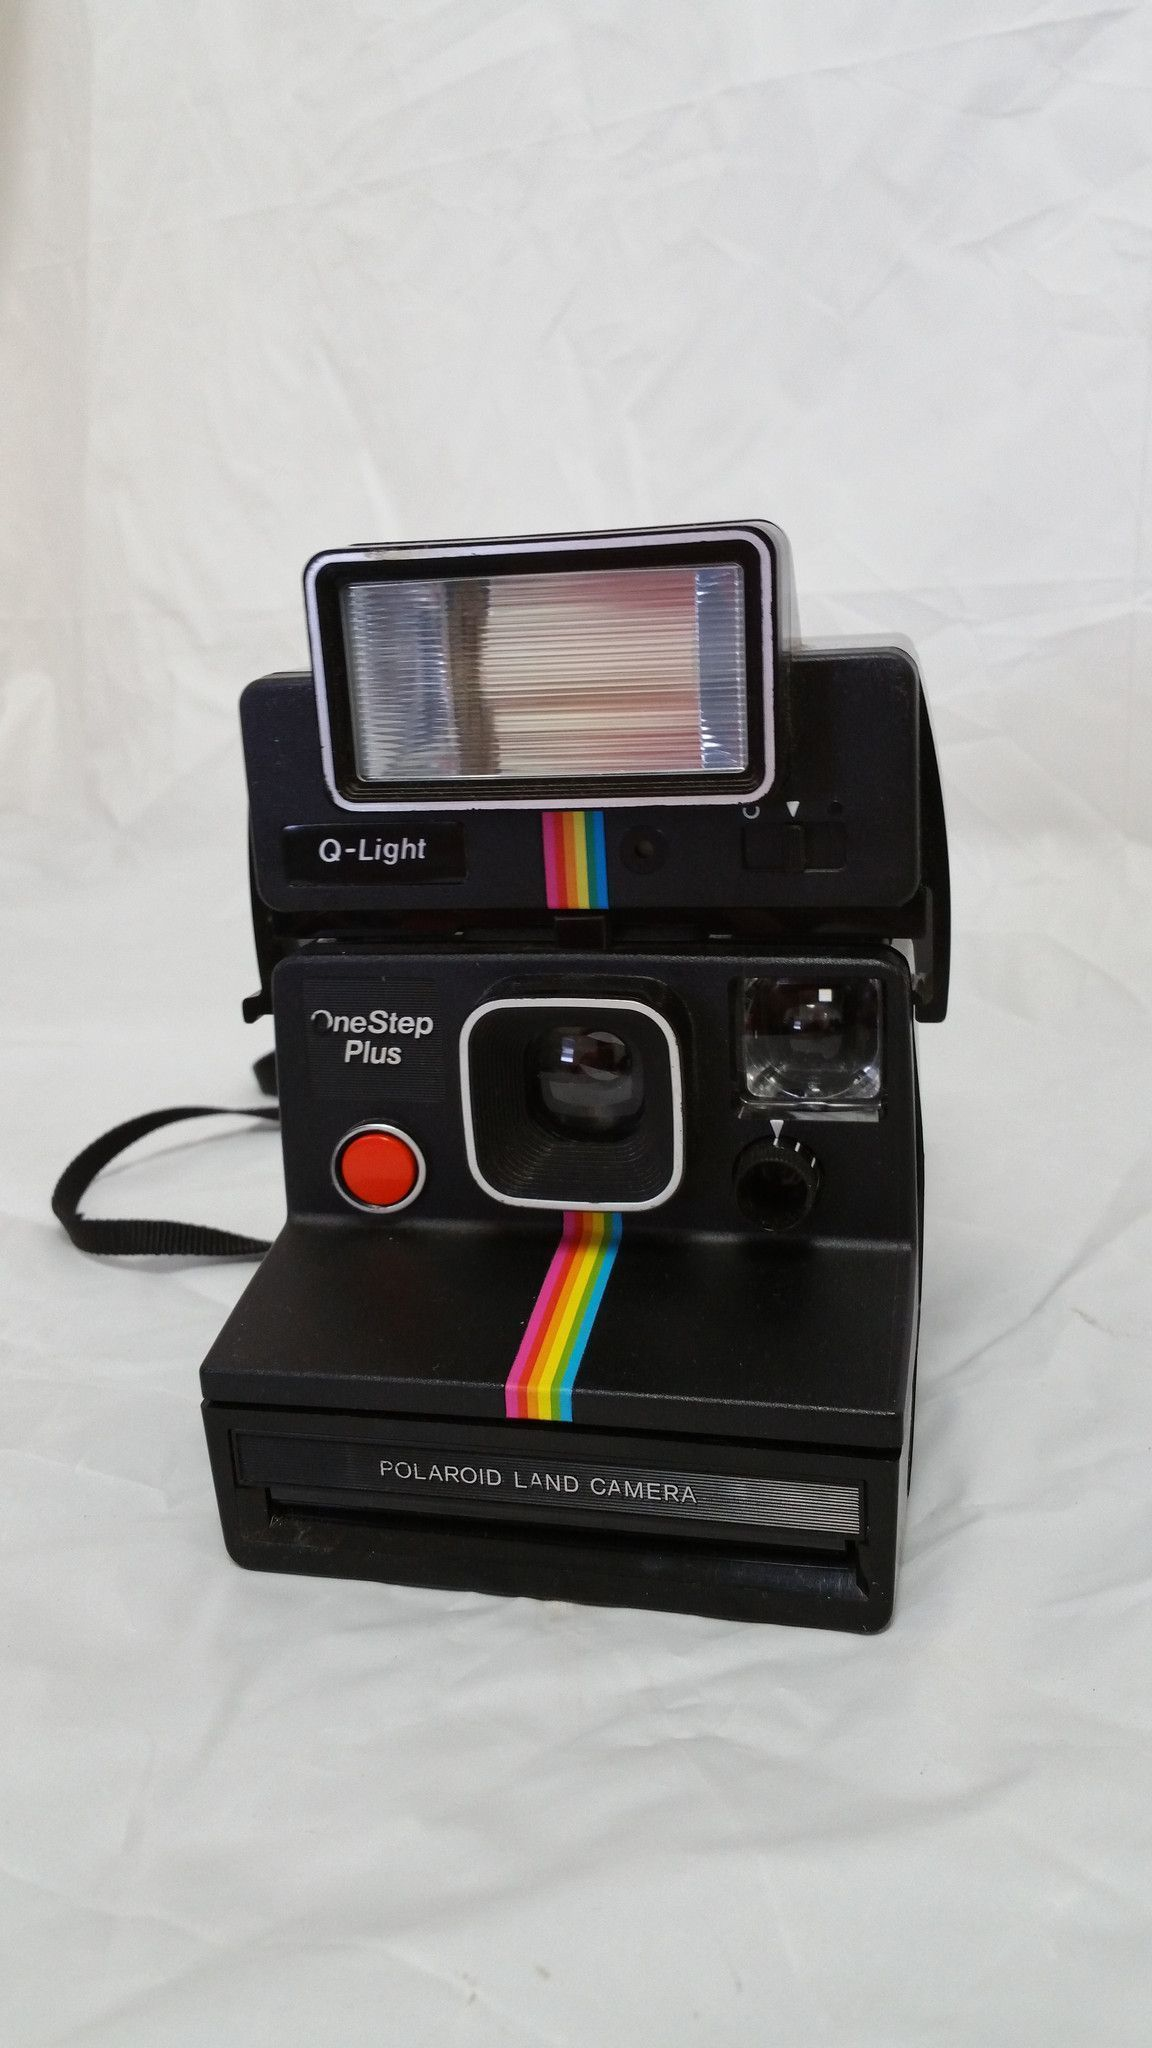 polaroid one step plus instant camera w q light includes manuals rh pinterest com polaroid impulse af user manual Polaroid Automatic 250 Land Camera